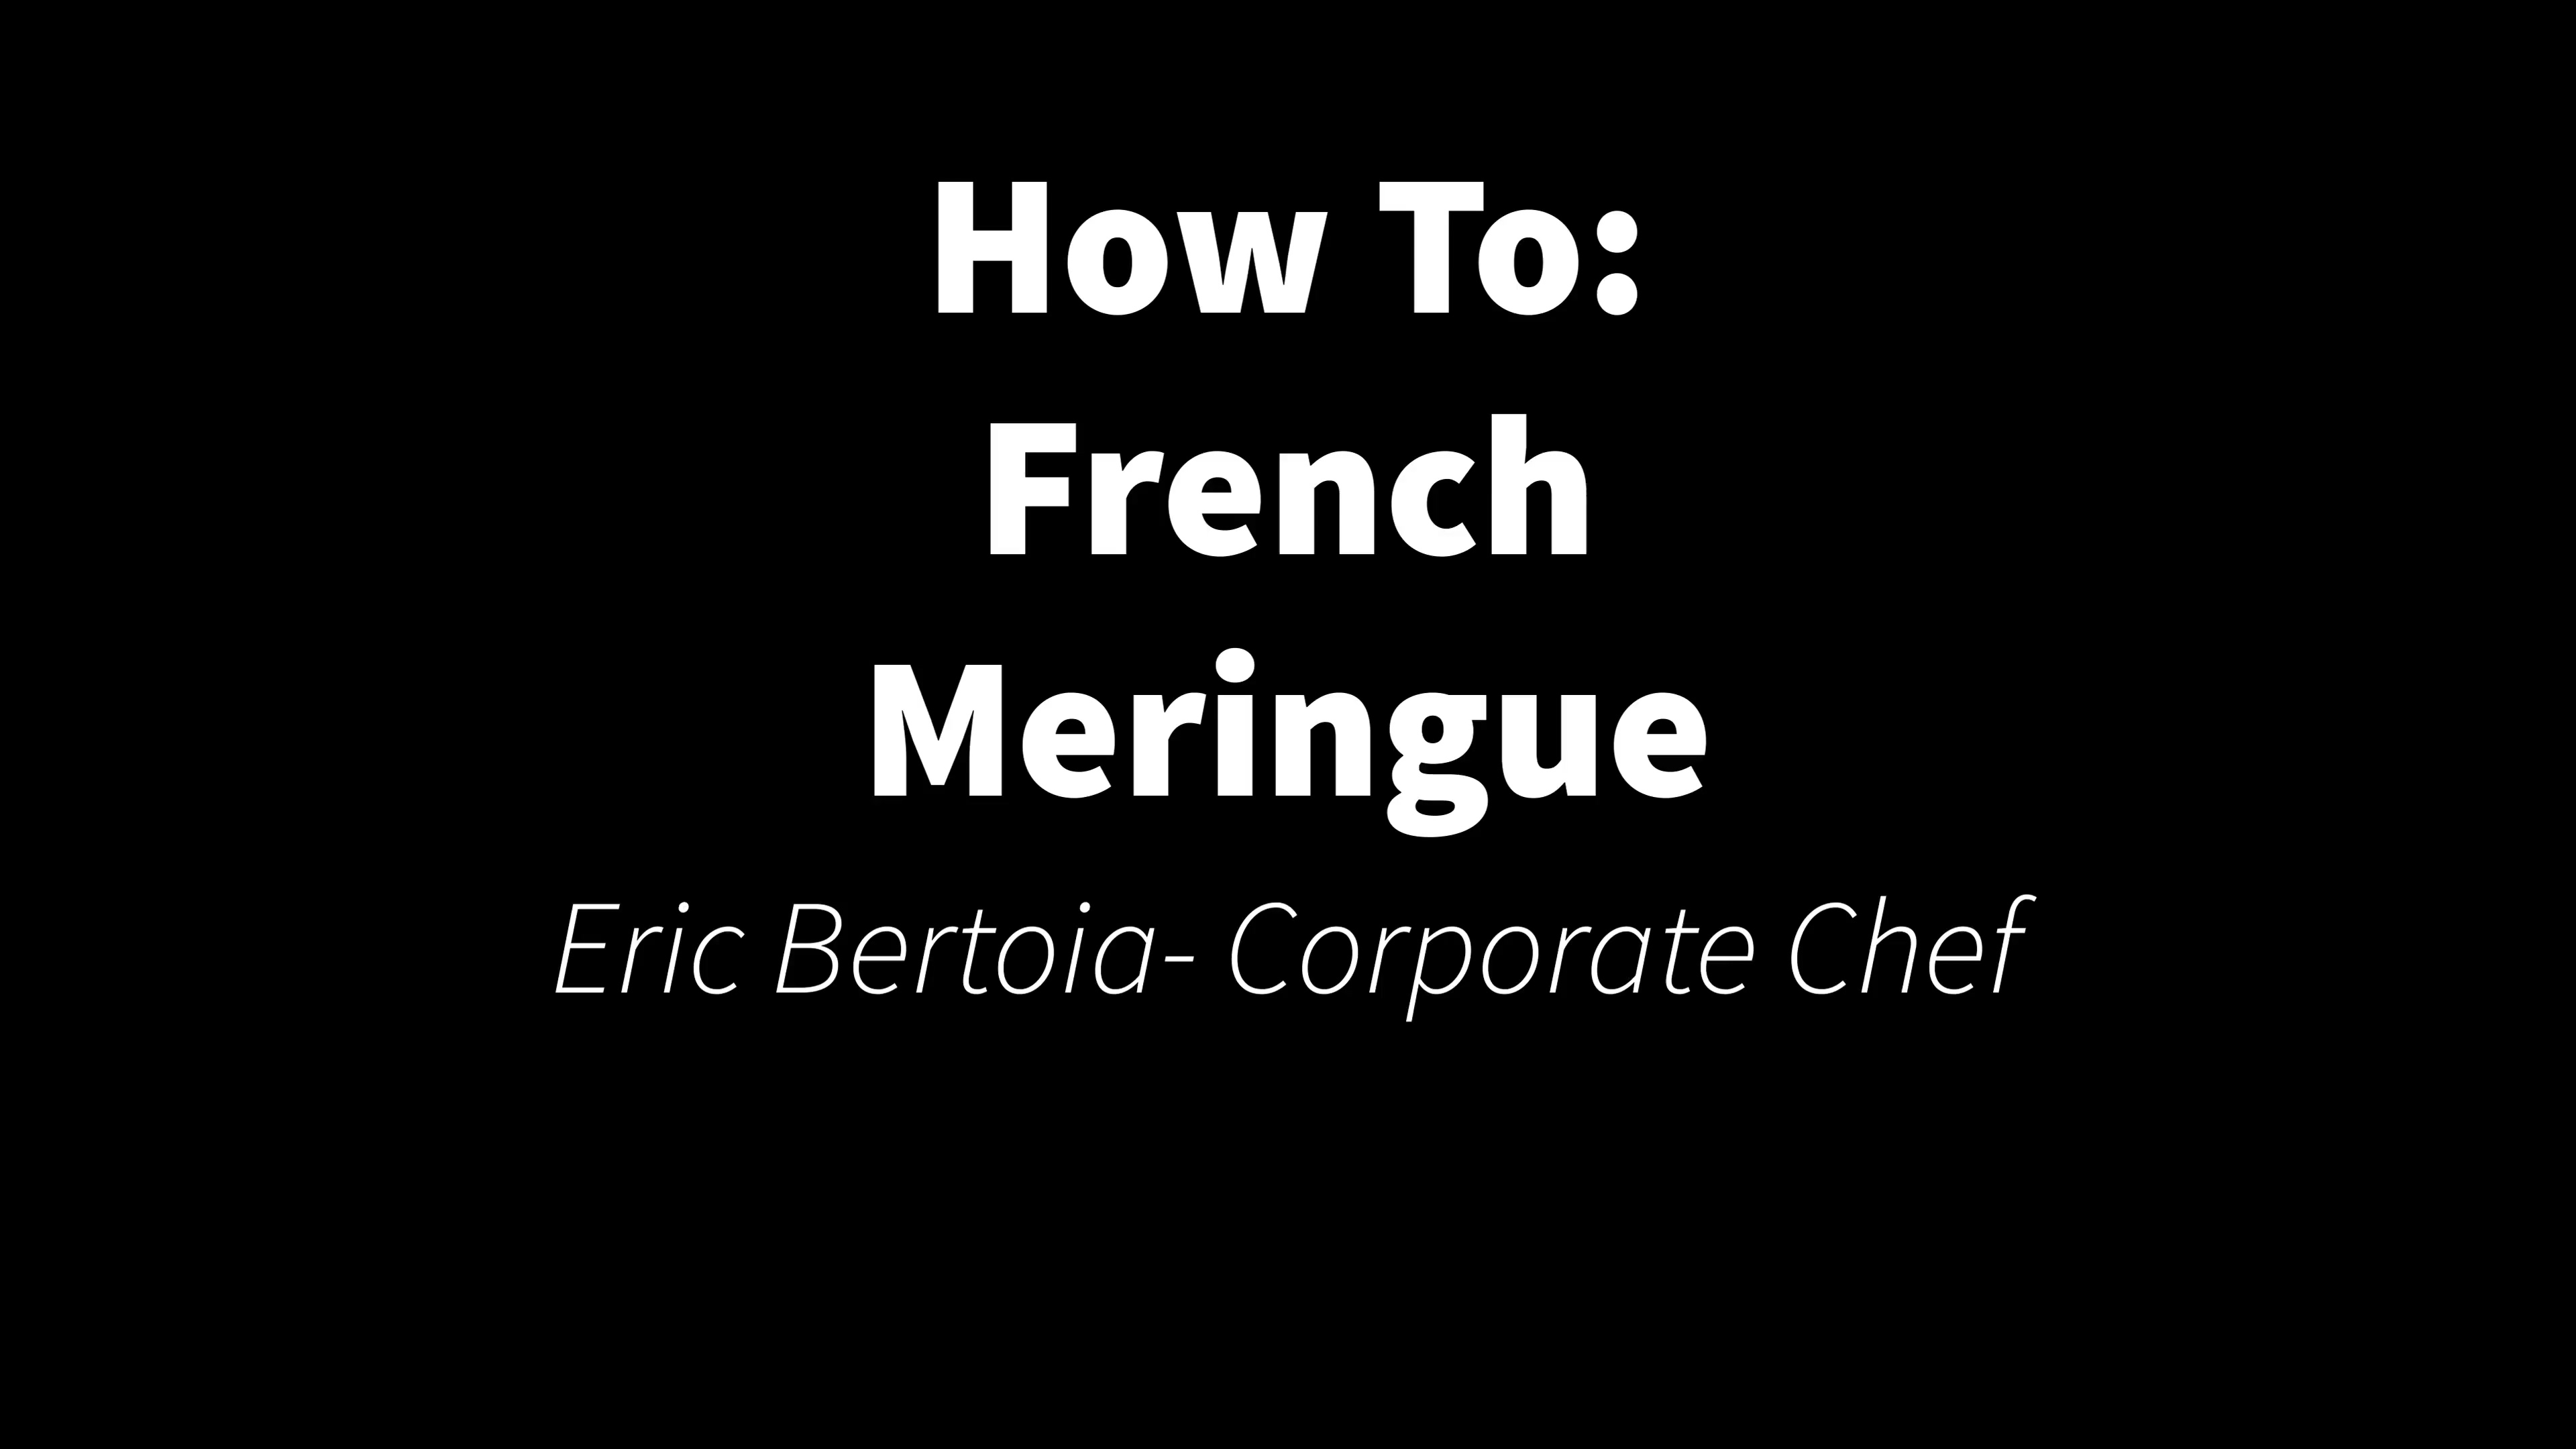 How To- French Meringue